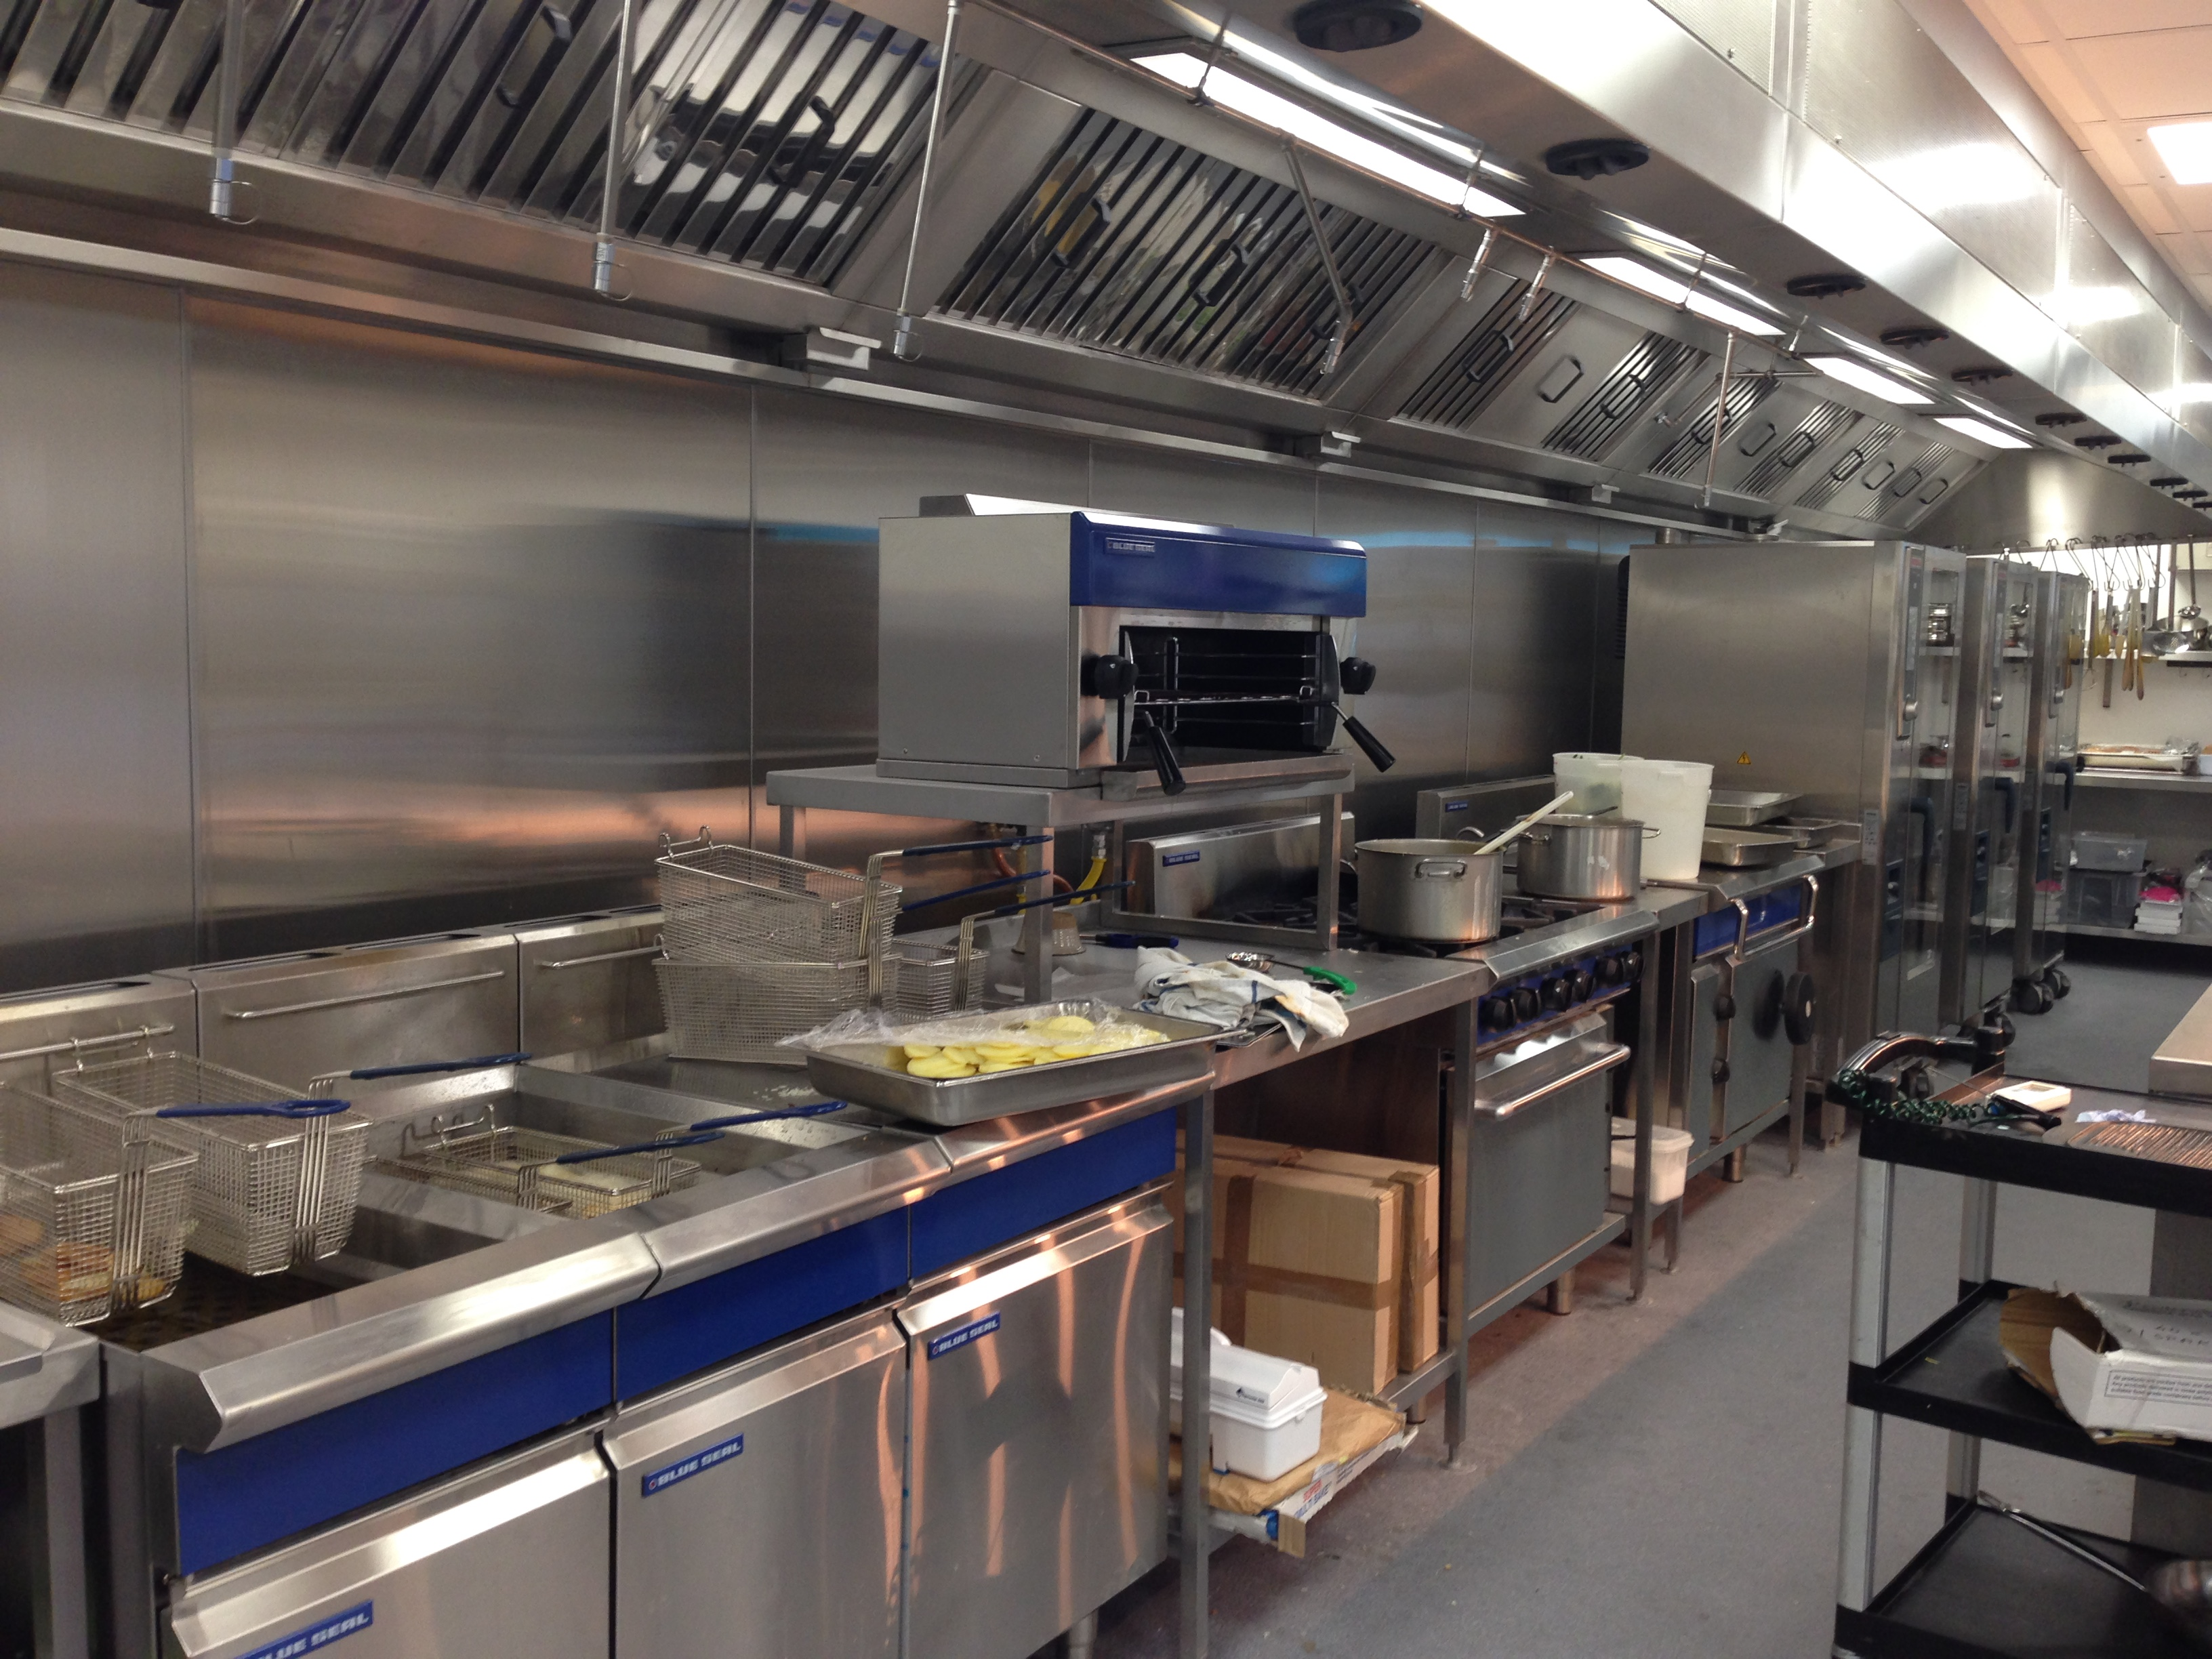 University of west london catering design group for London design group